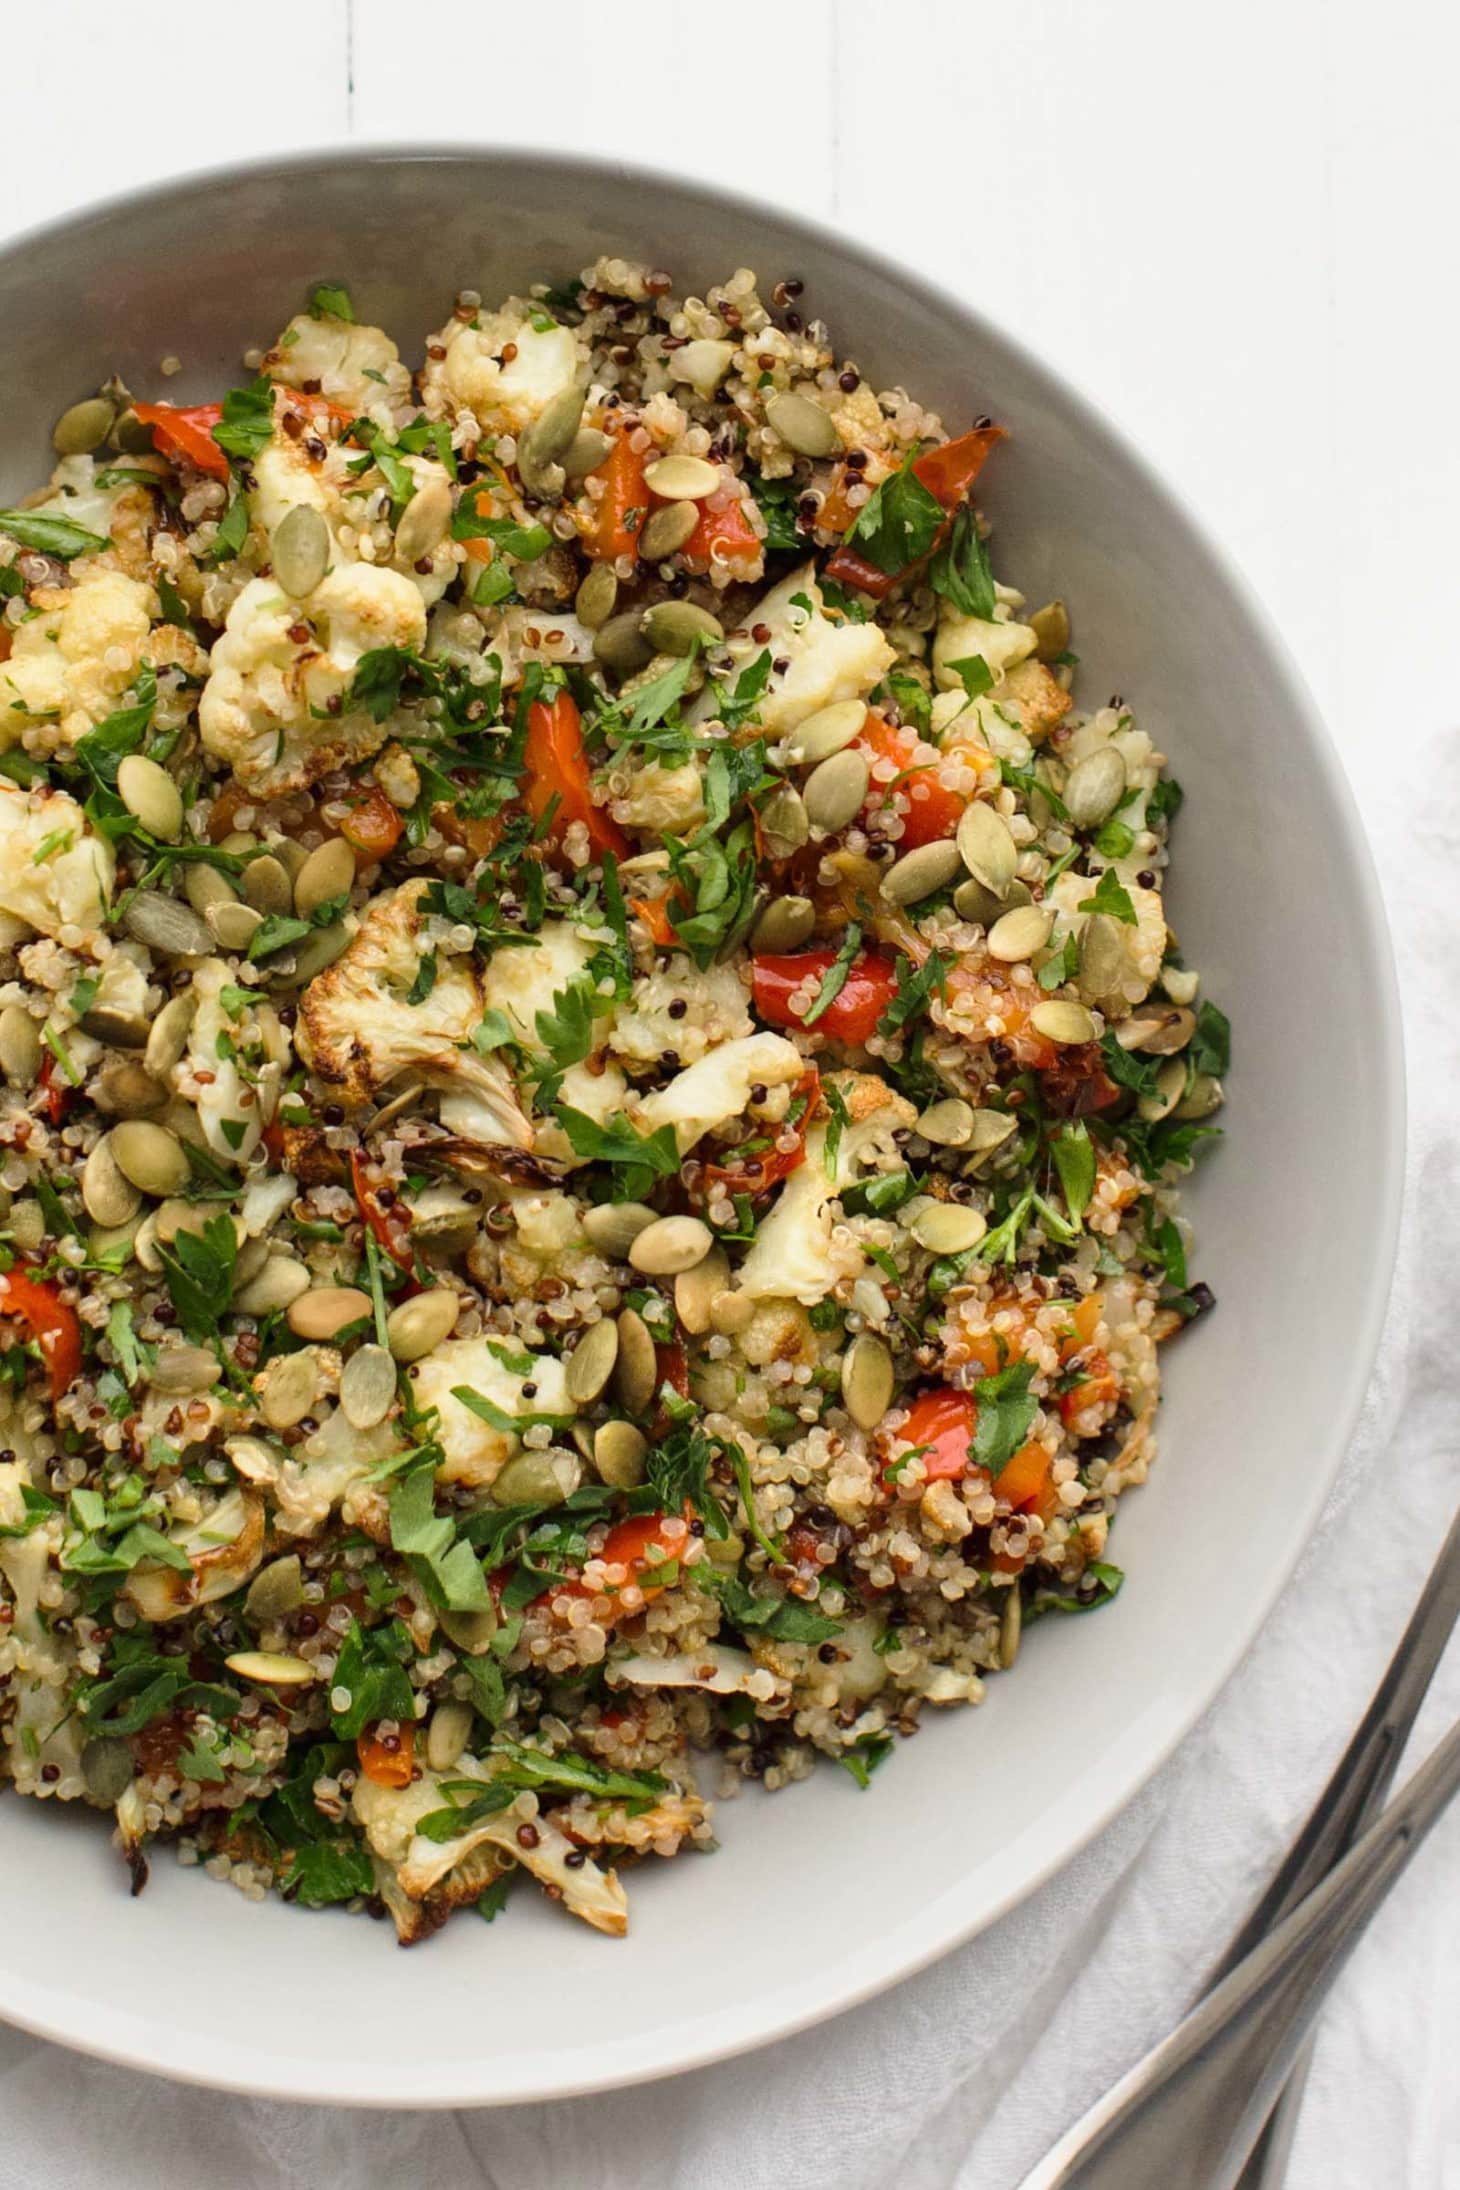 Caramelized Cauliflower Salad with Quinoa and Roasted Red Pepper